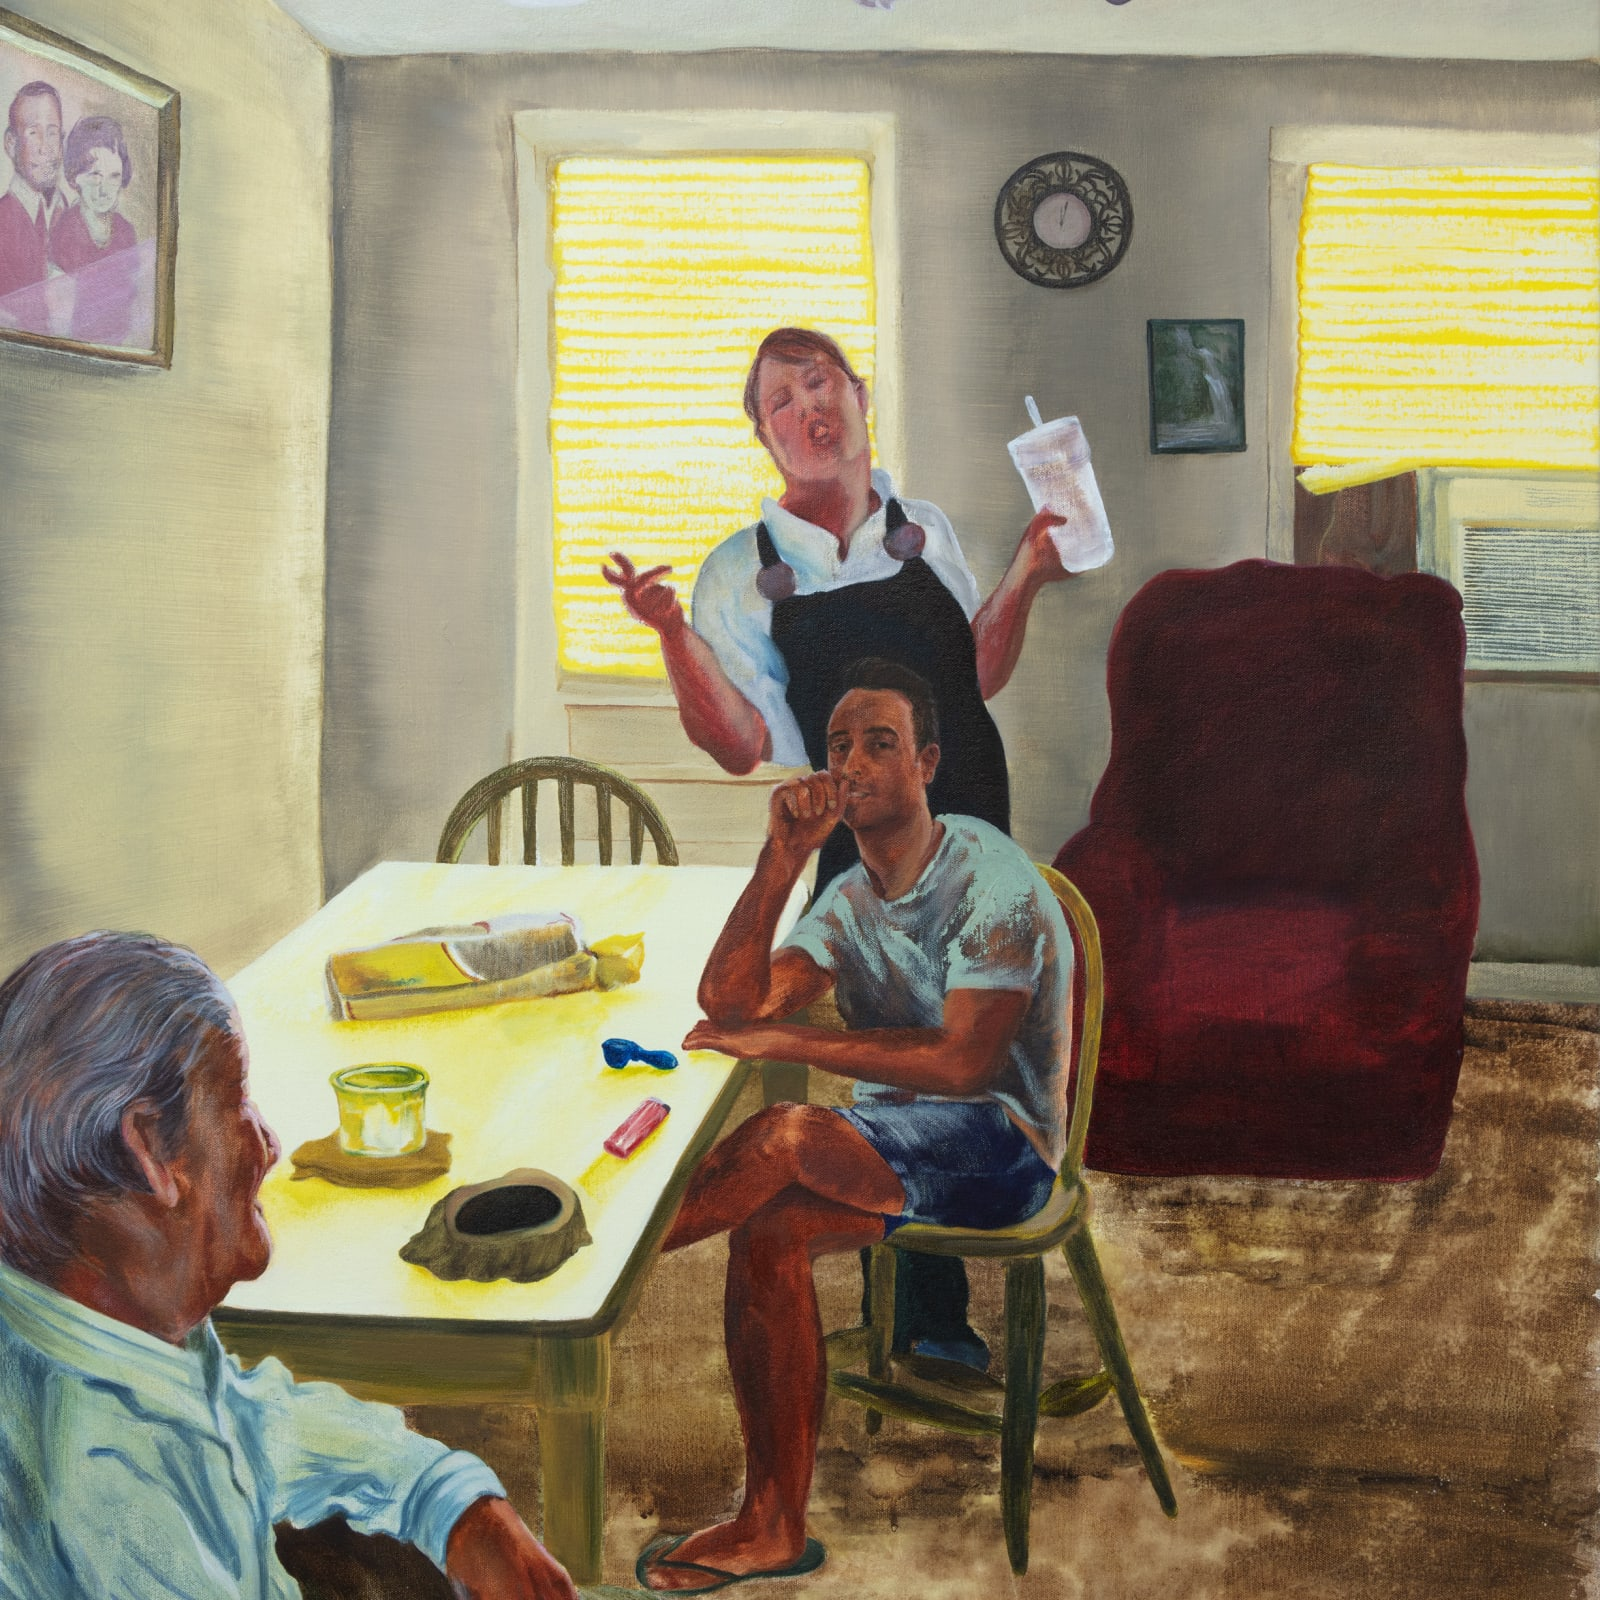 Maggie Ellis  Tommy's House, 2019  Oil on canvas  40 x 35 in (101.6 x 88.9 cm)